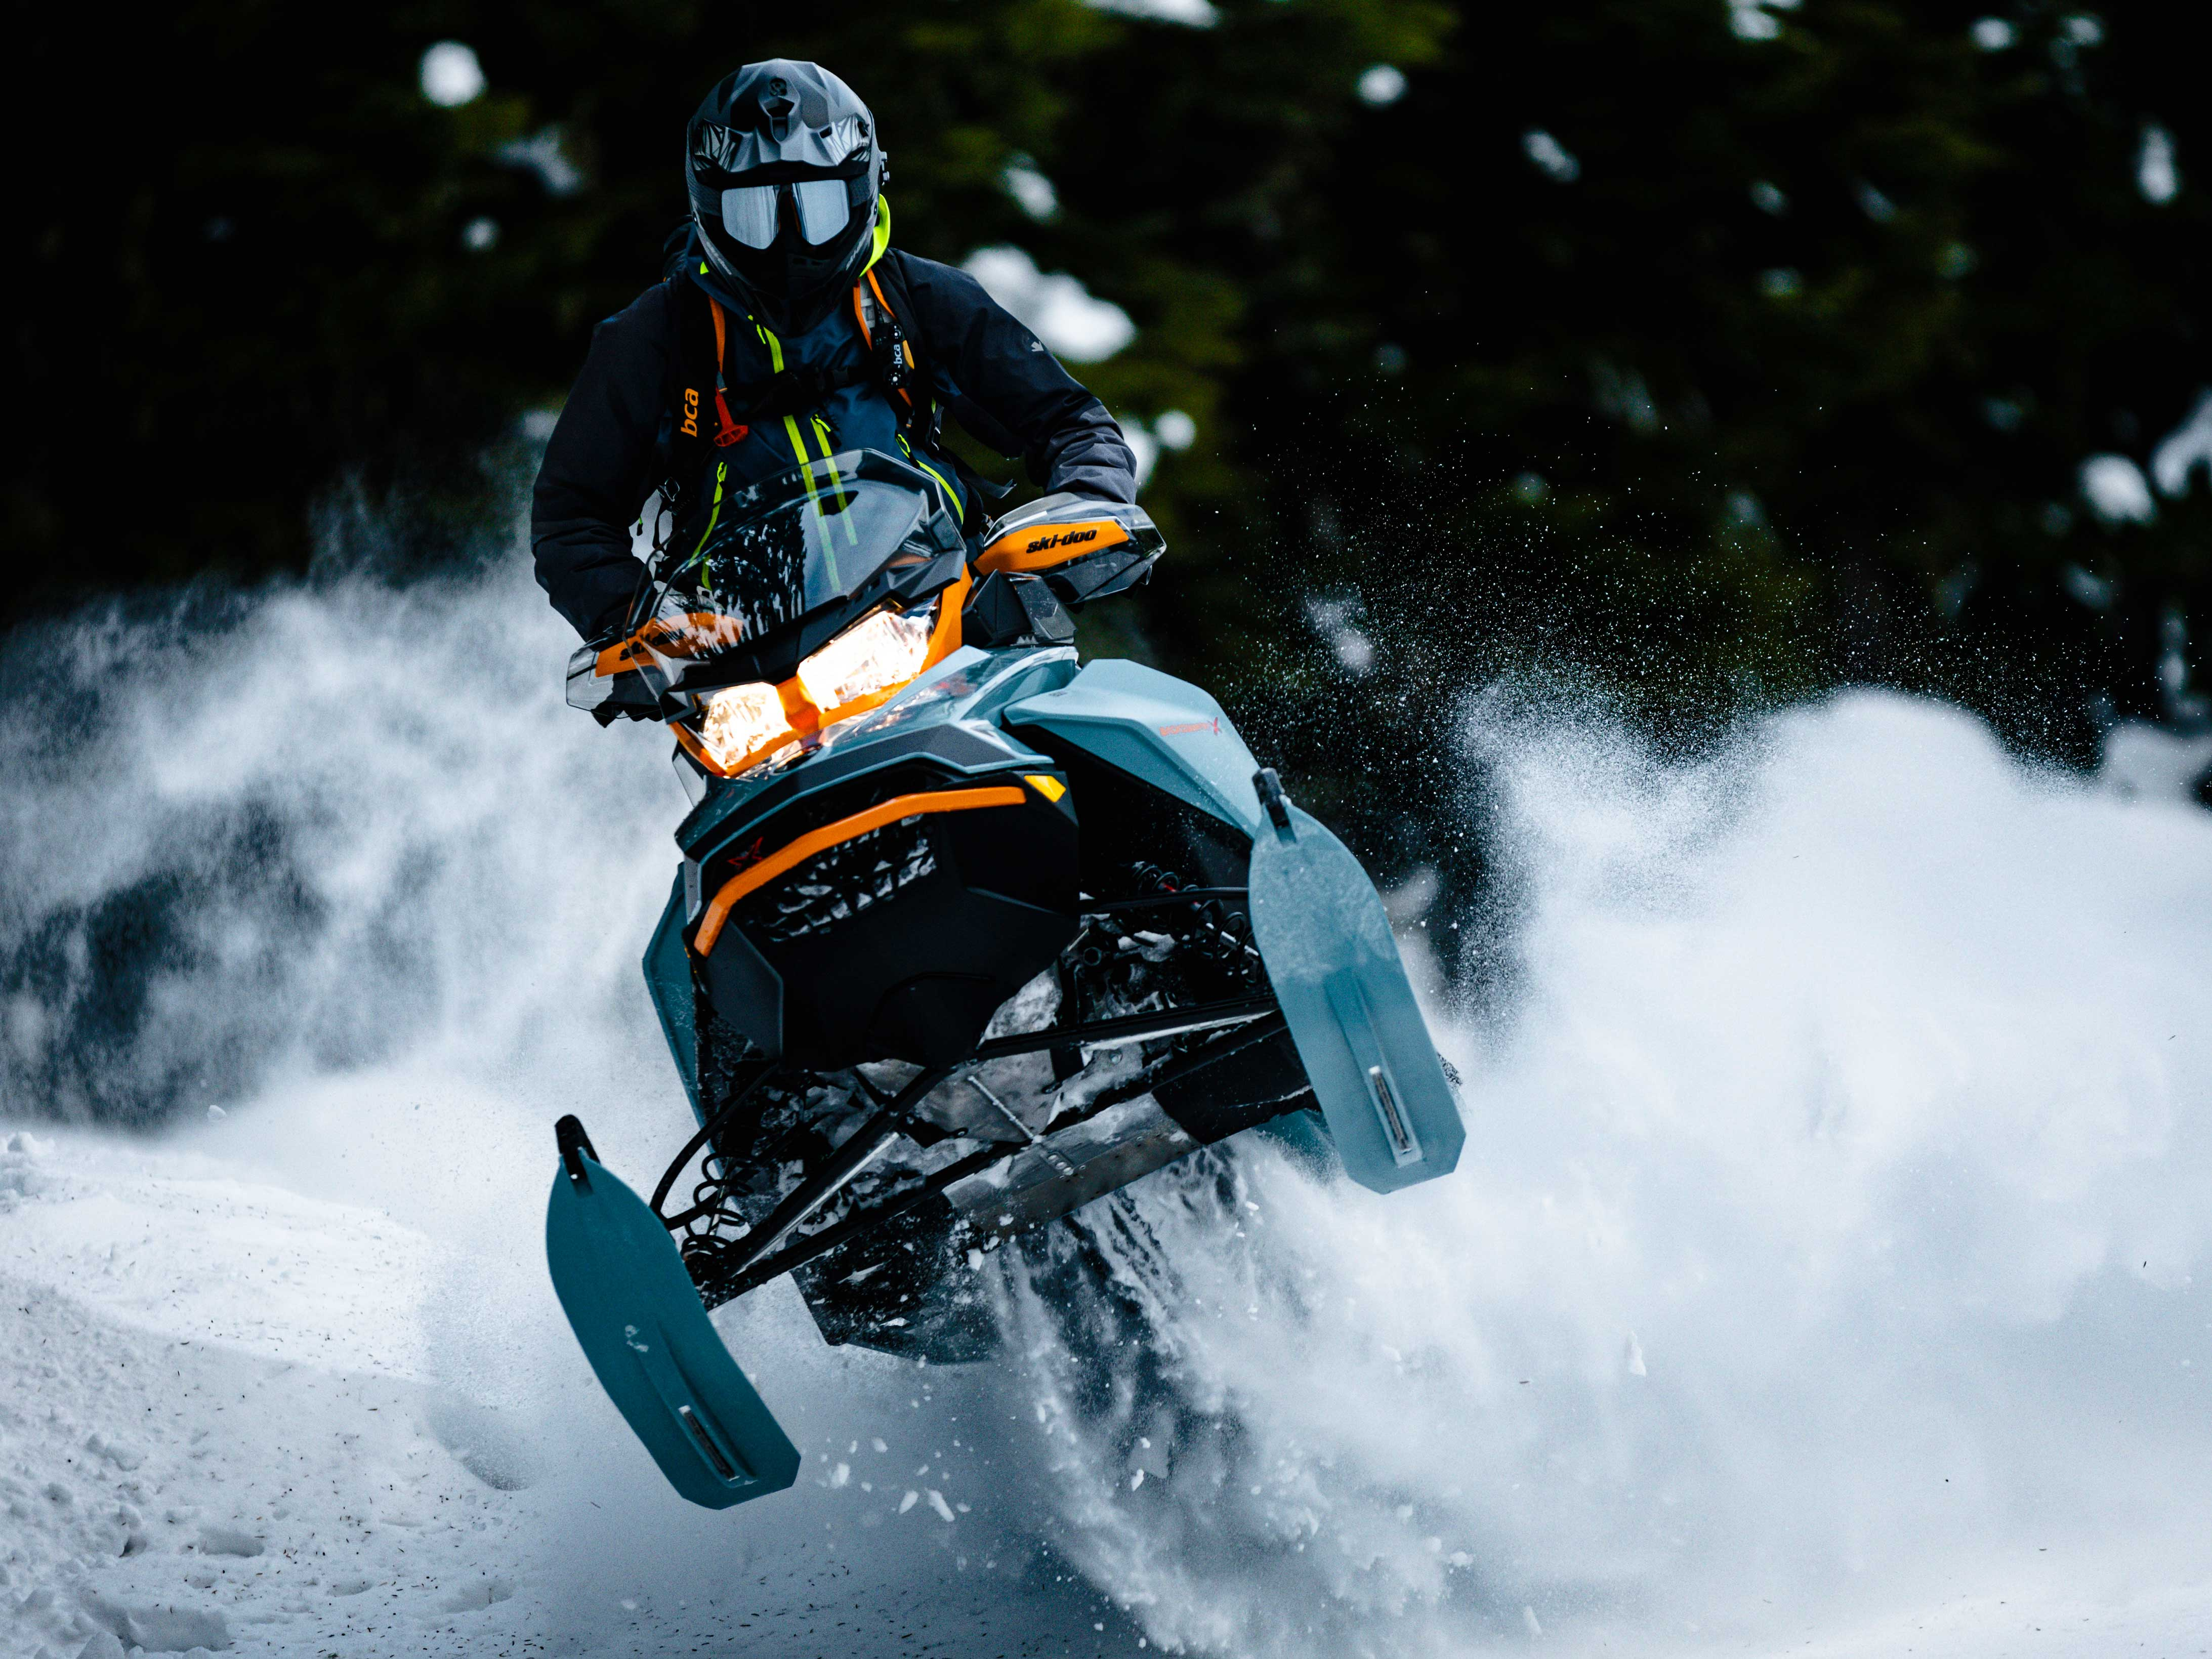 Man jumping in Powder with a 2022 Ski-Doo Backcountry